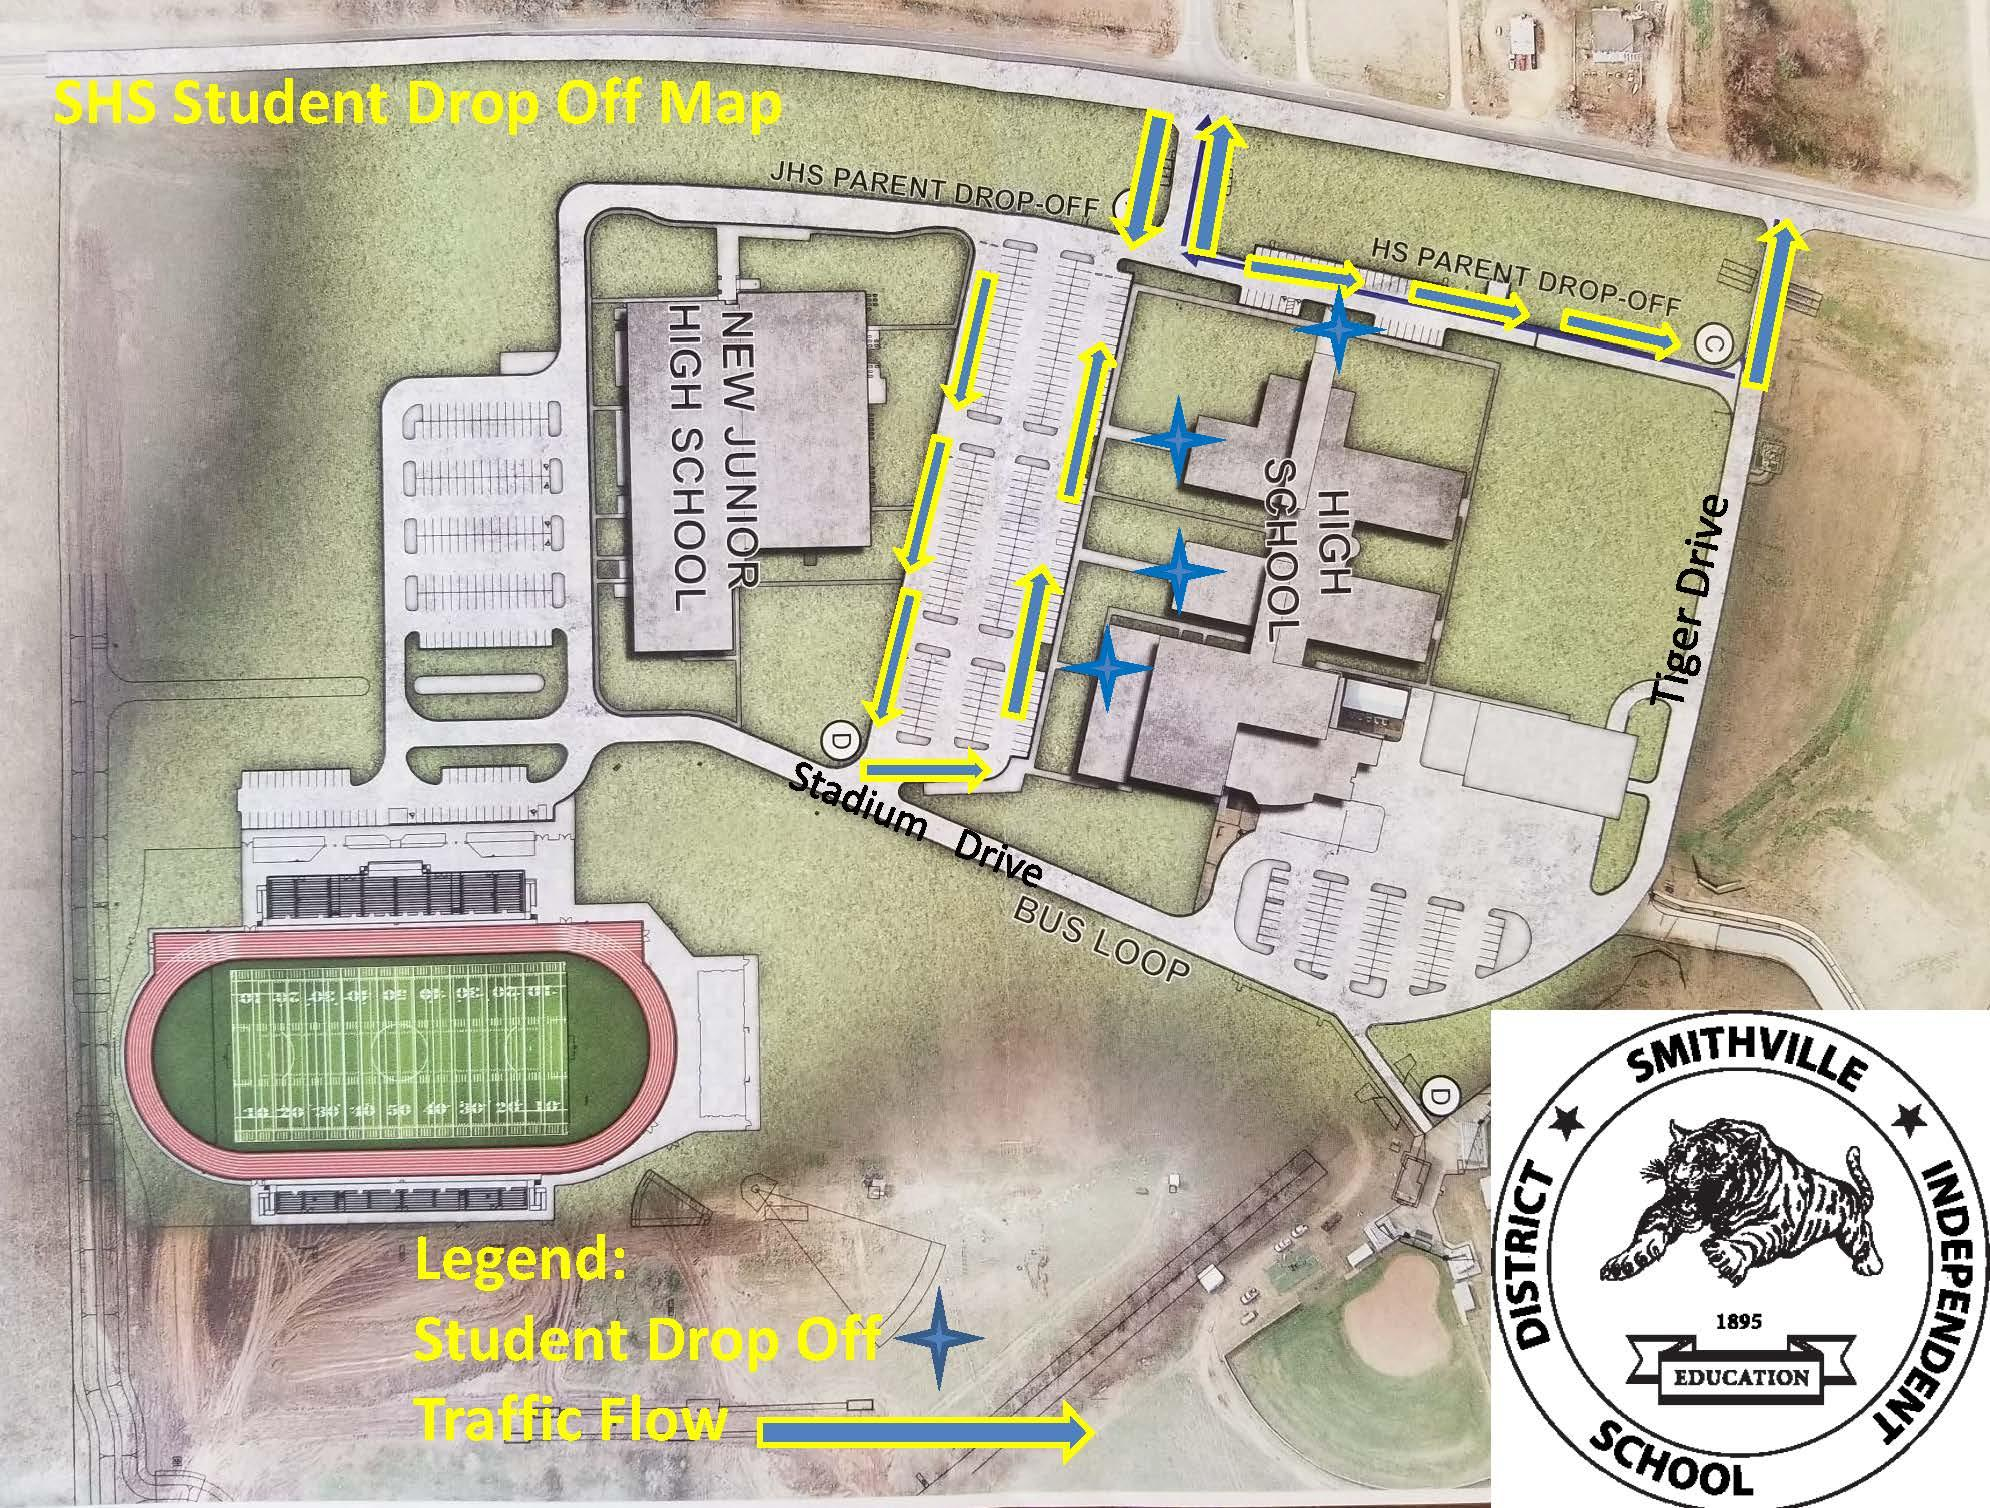 SHS Student Drop-off Map